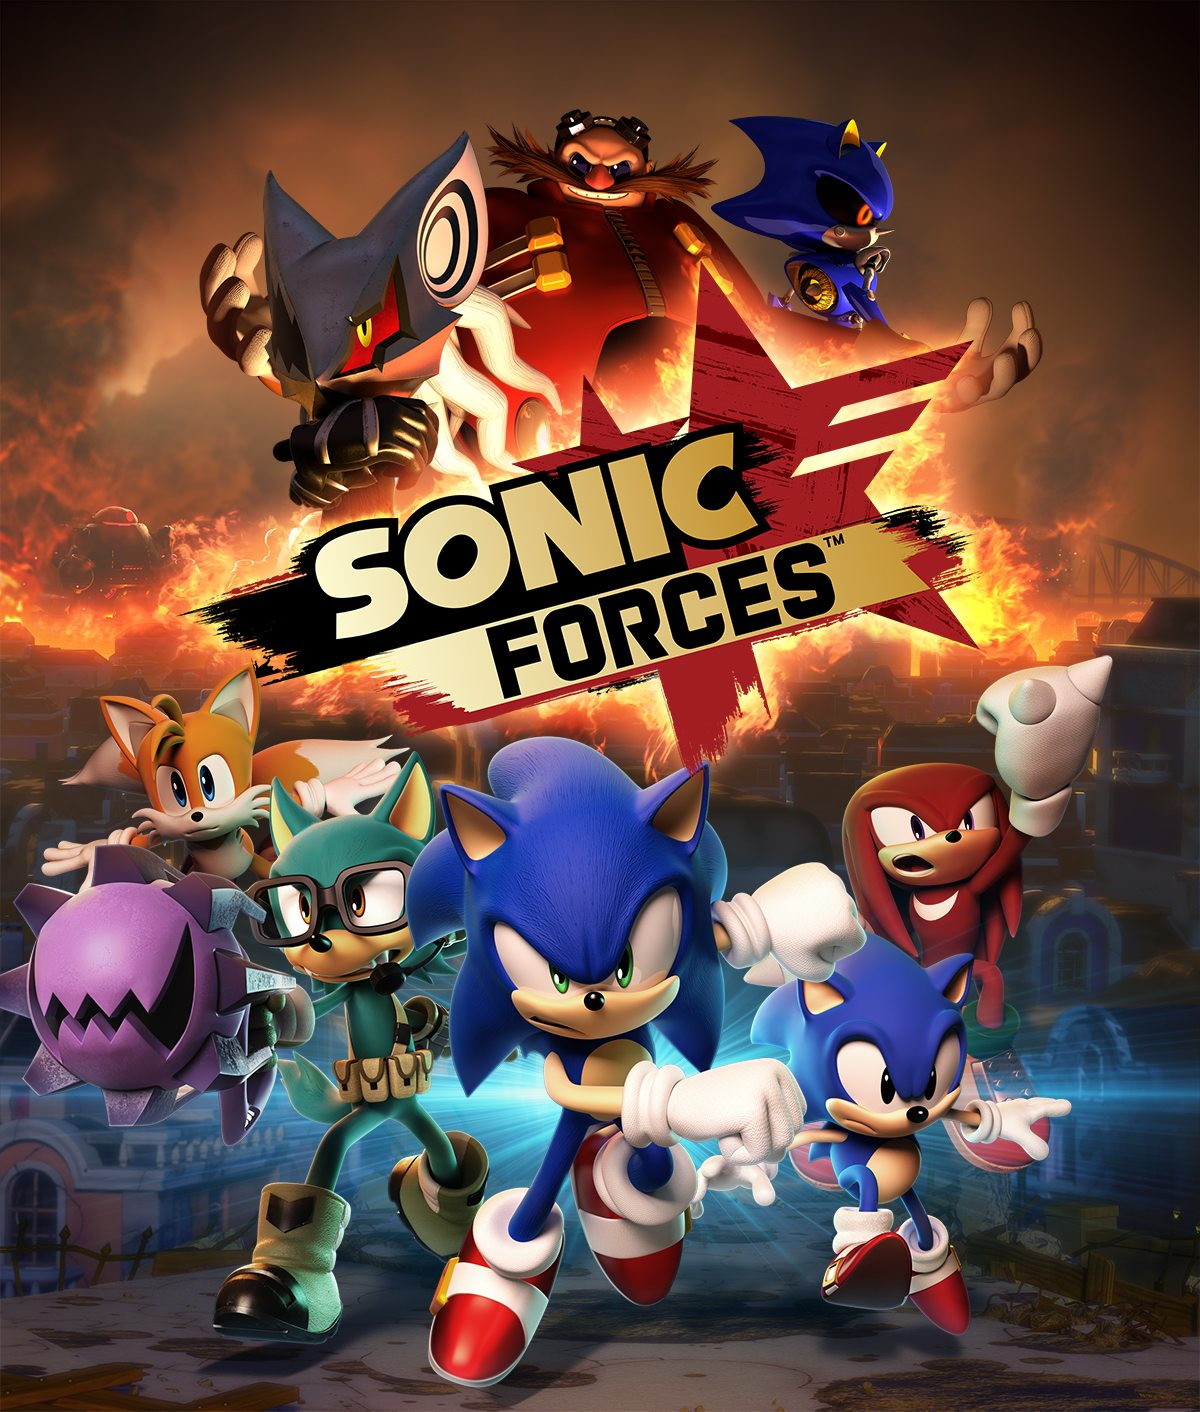 Sonic Forces Bonus Edition brings JetSet Radio and Persona 5 to your